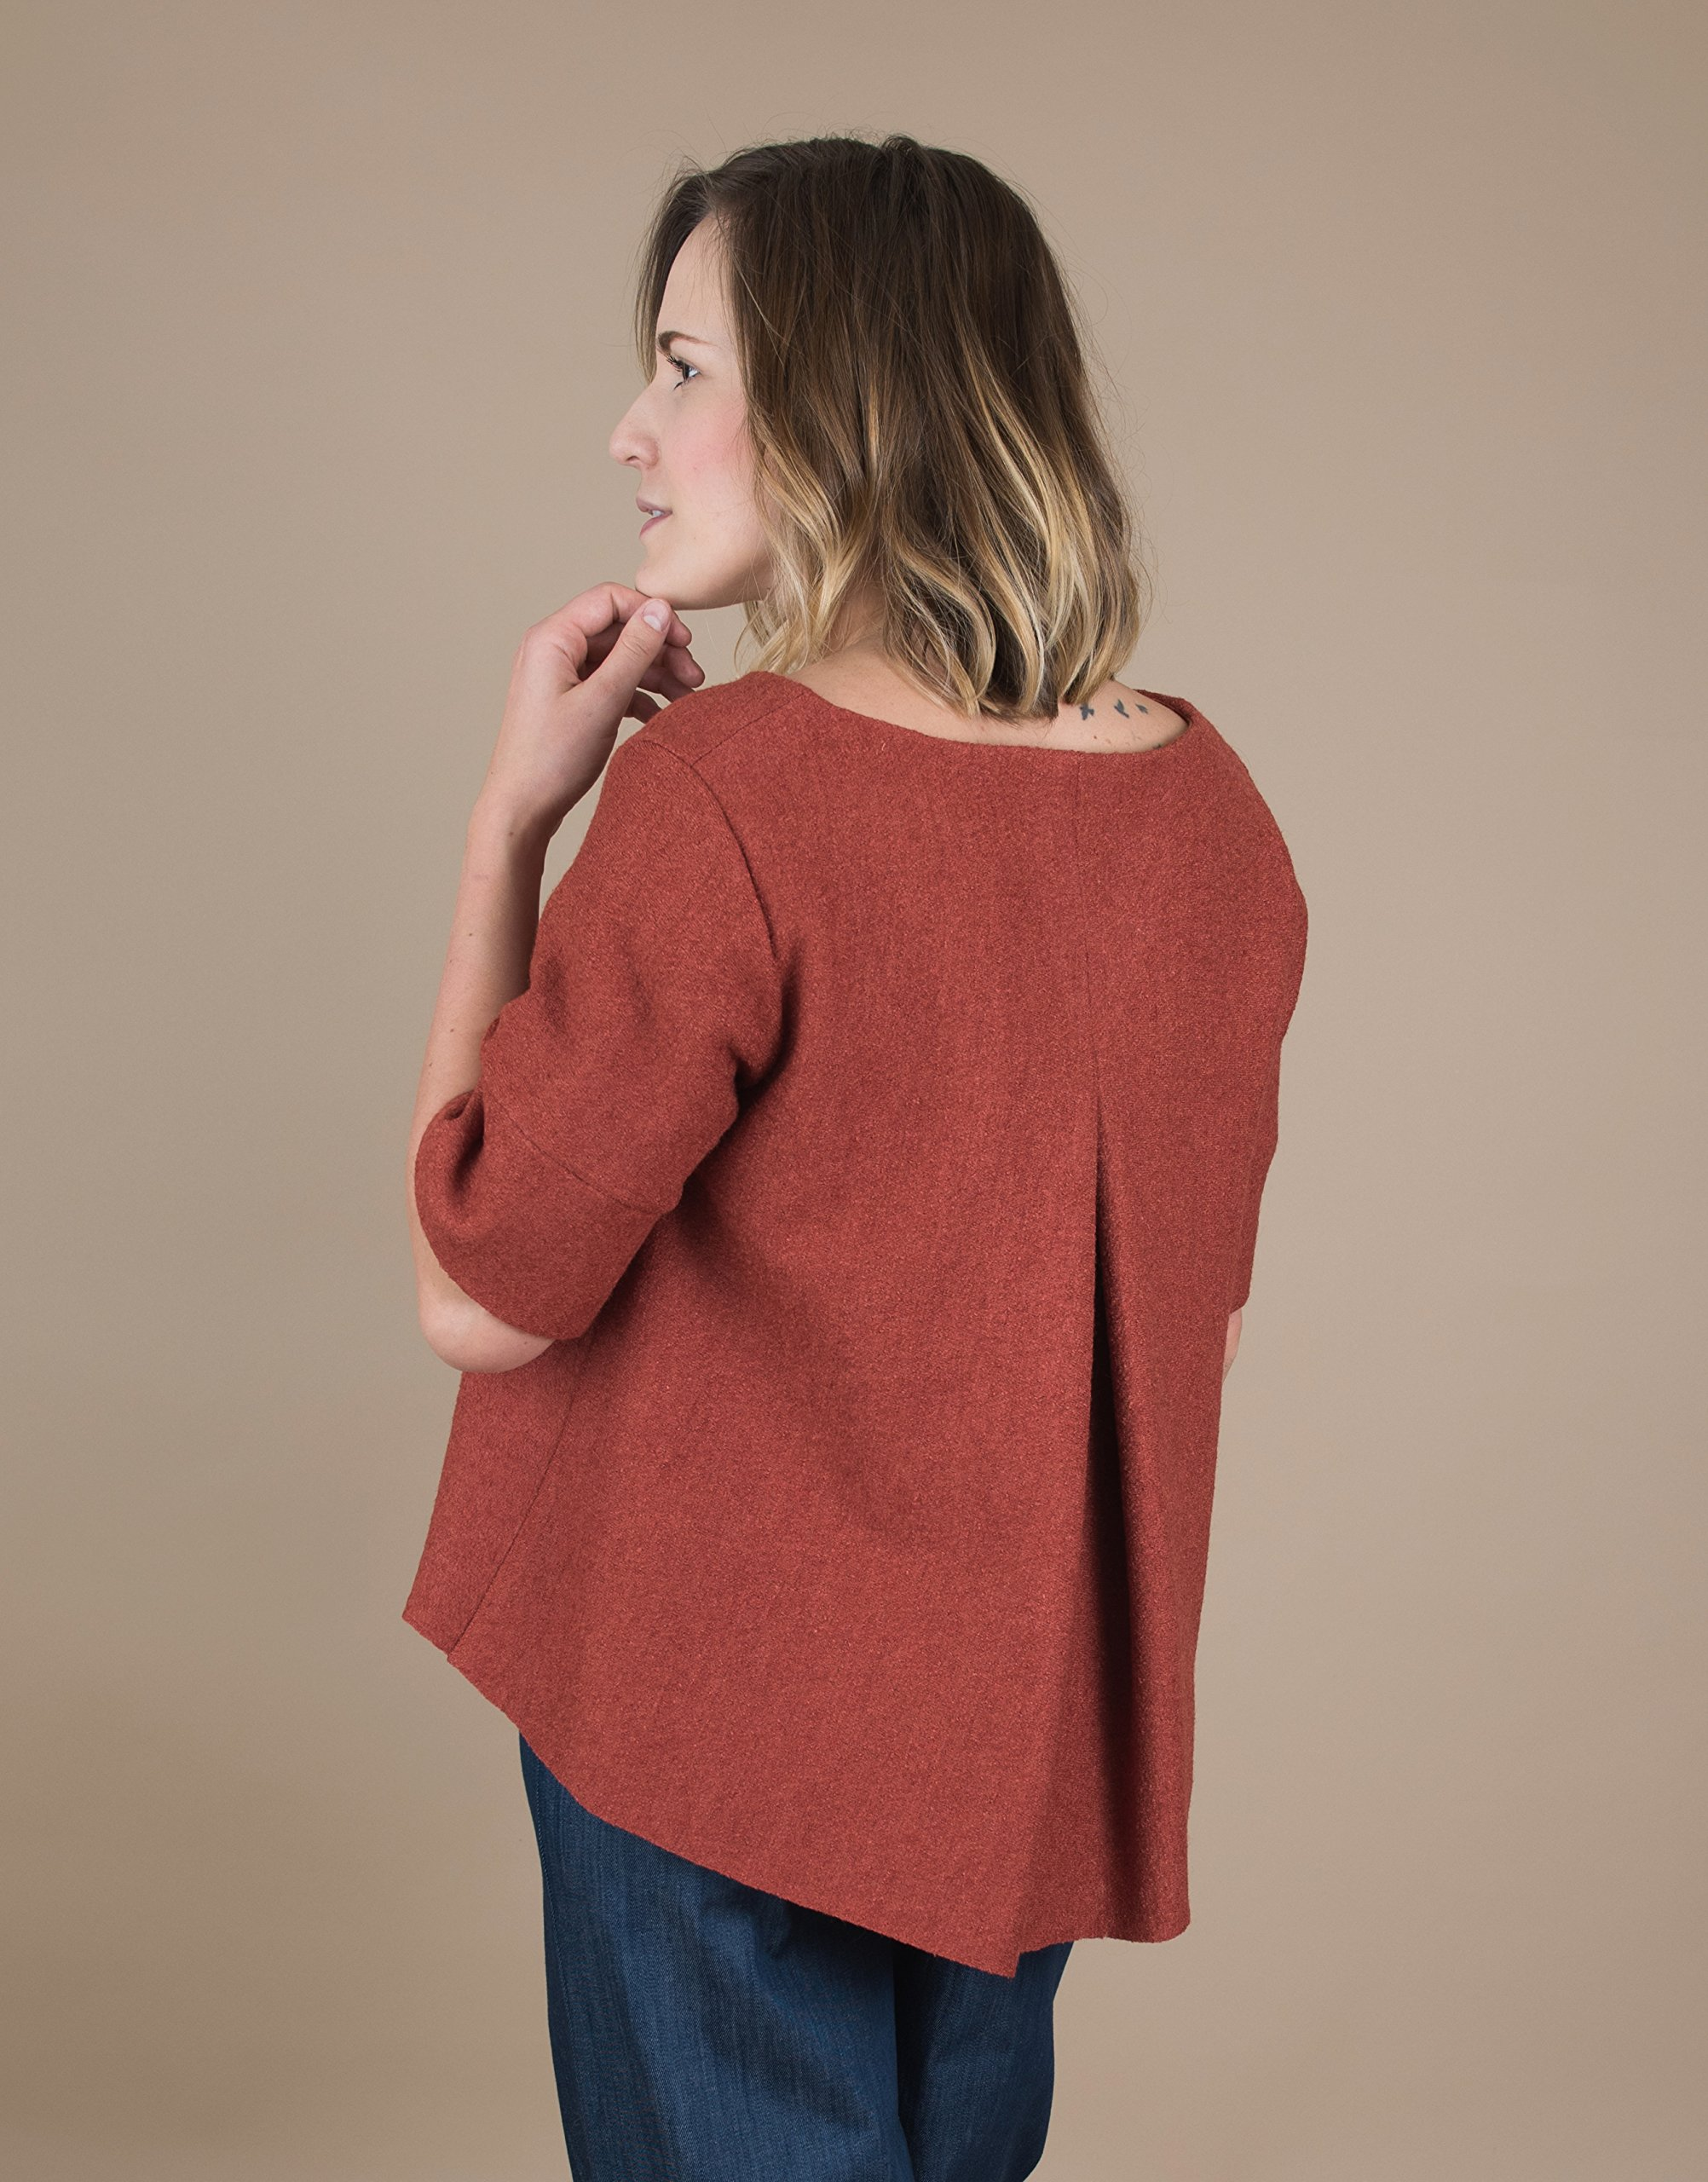 Women's Short Sleeve Brick Wool Sweater